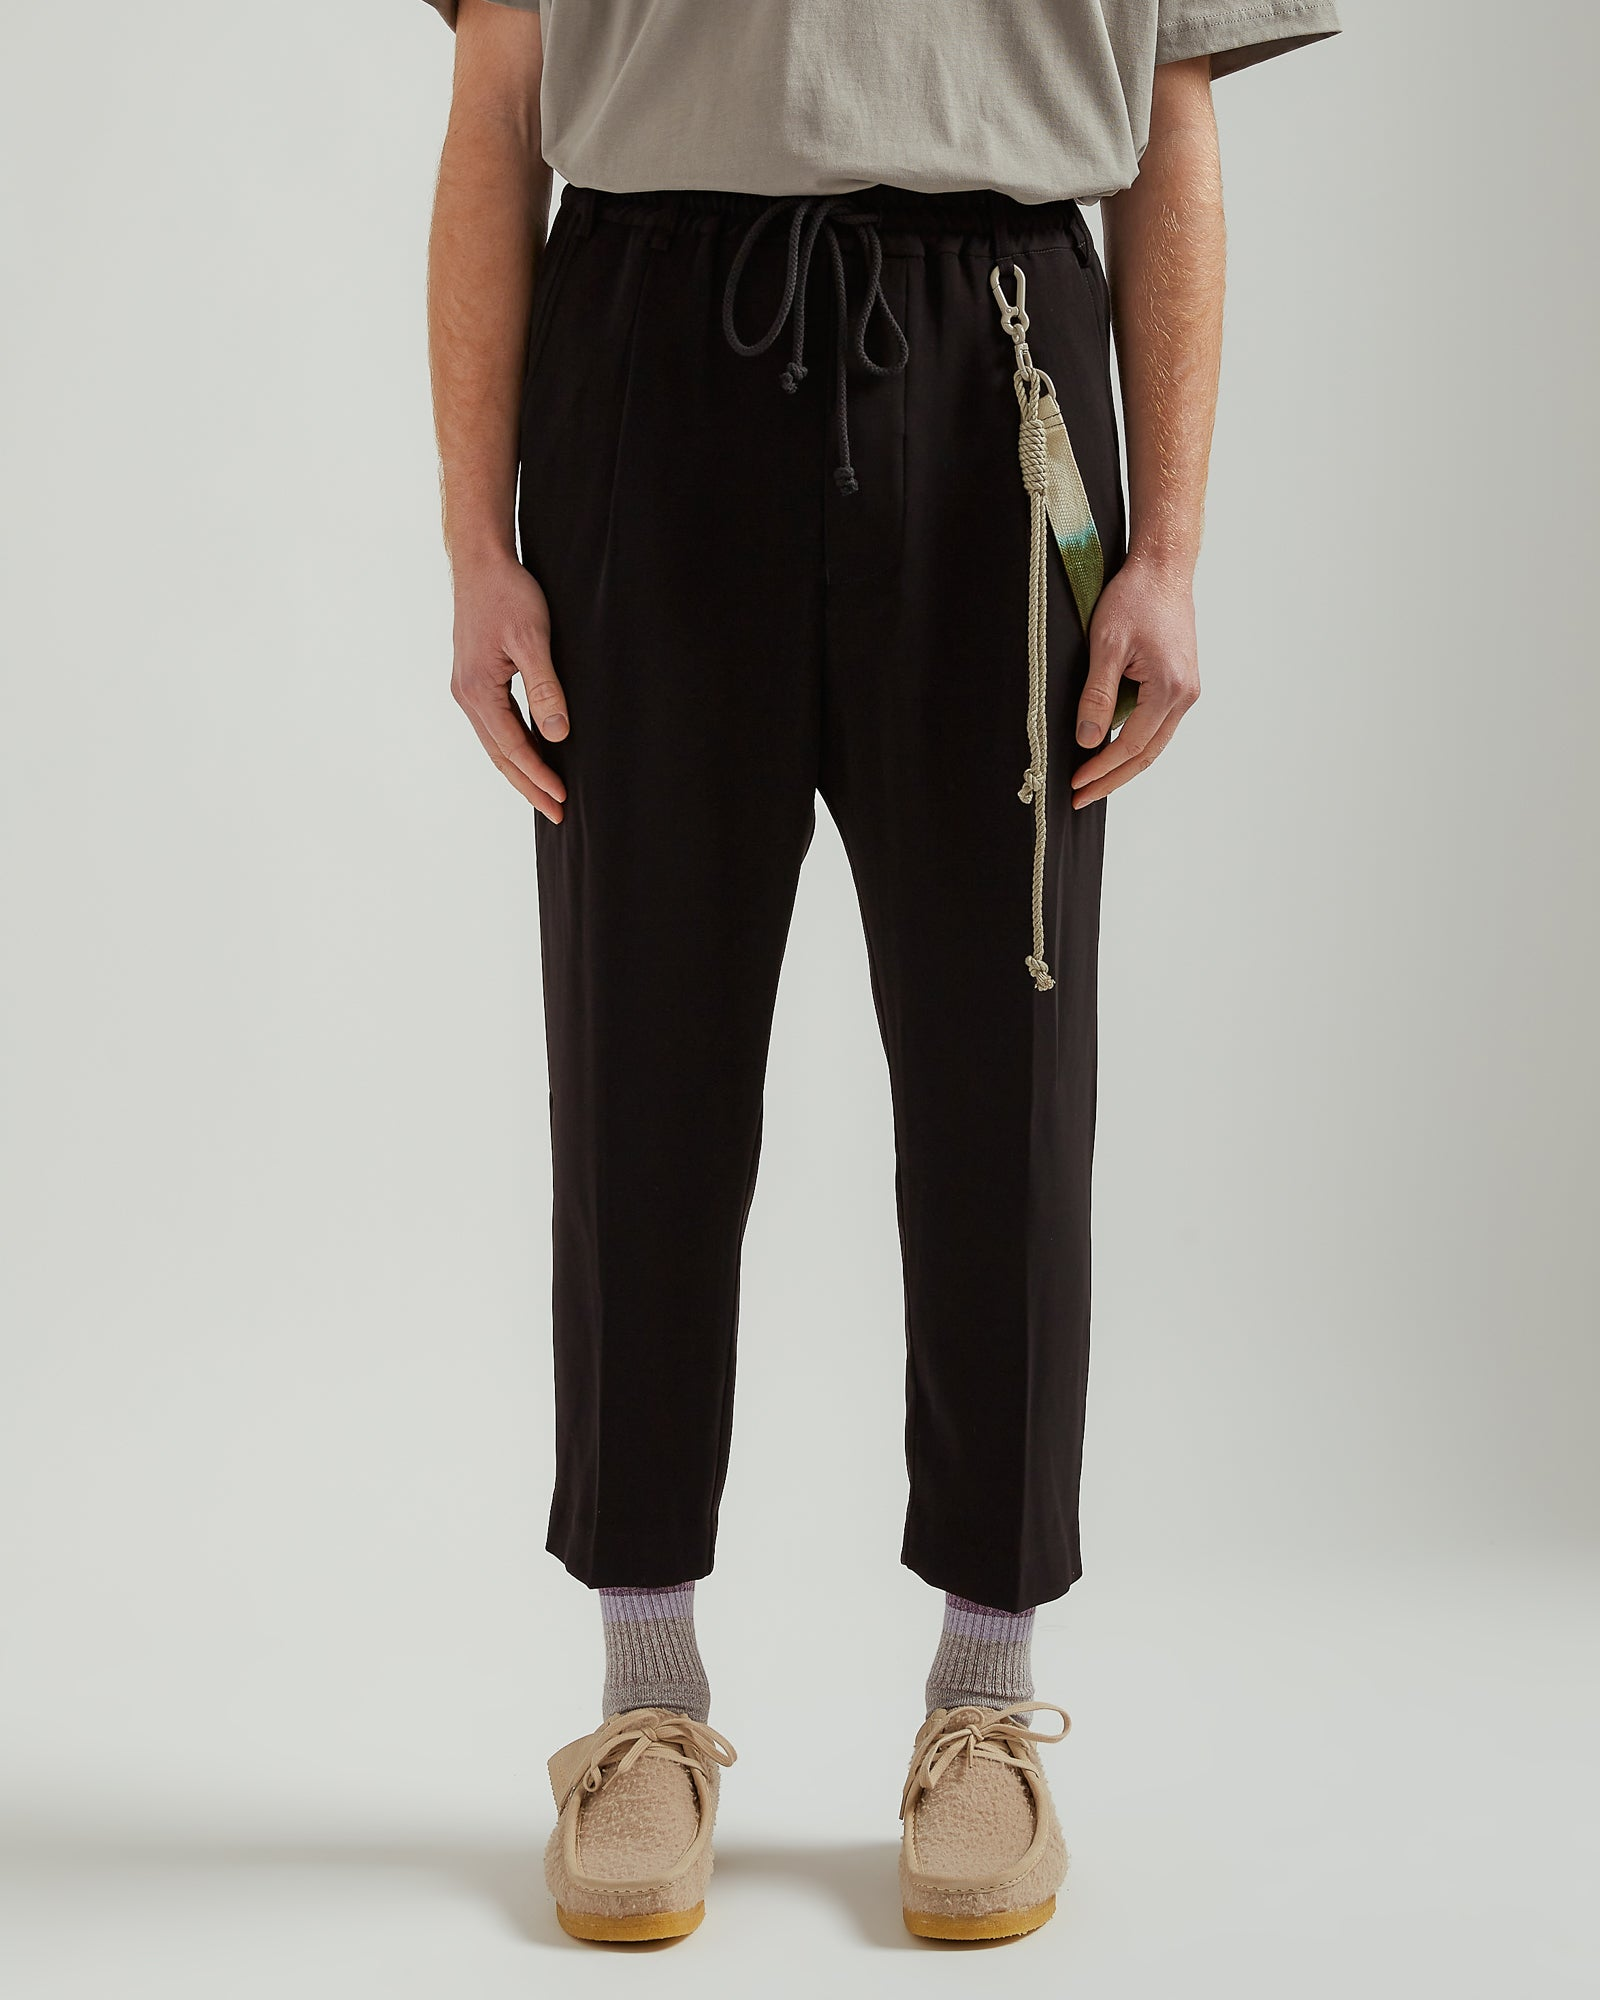 Lounge Pant in Black